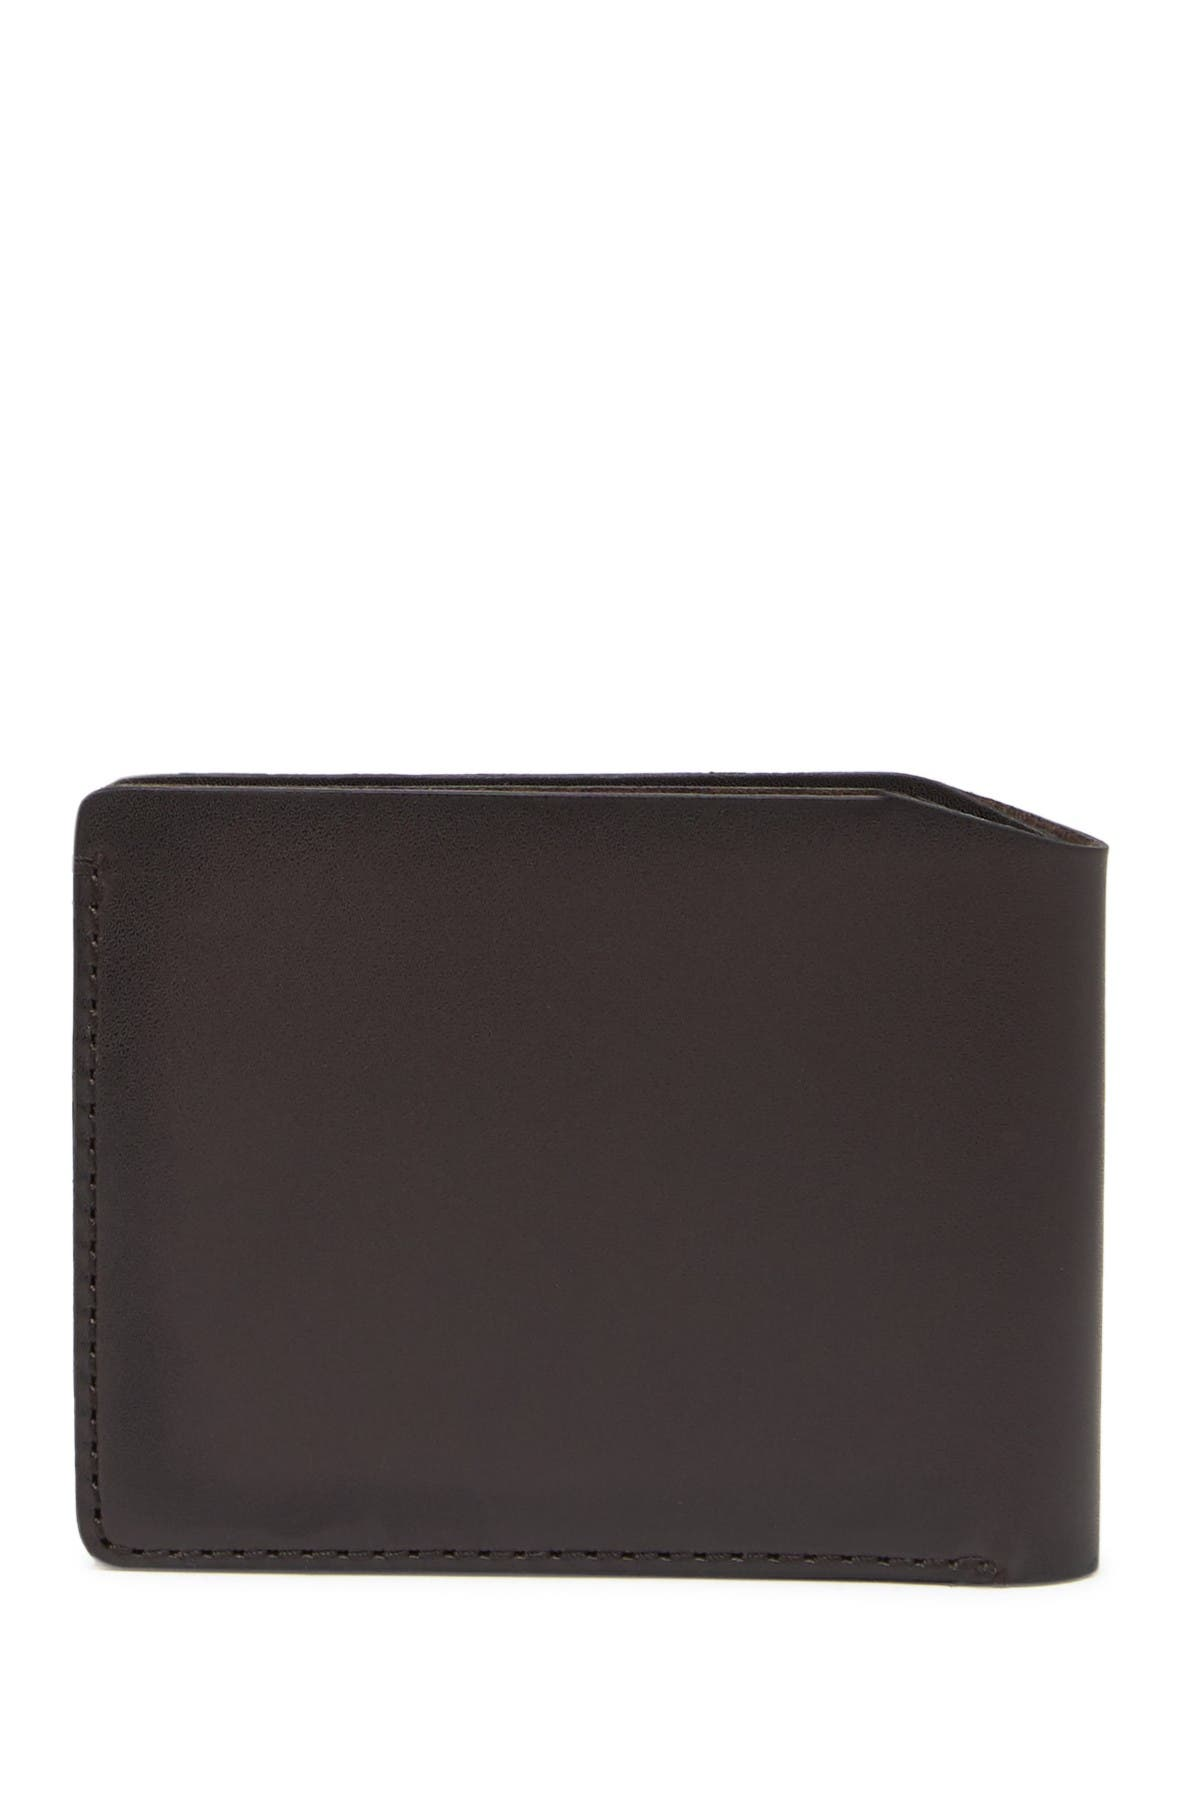 Image of John Varvatos Collection Unlined Leather Bilfold Wallet